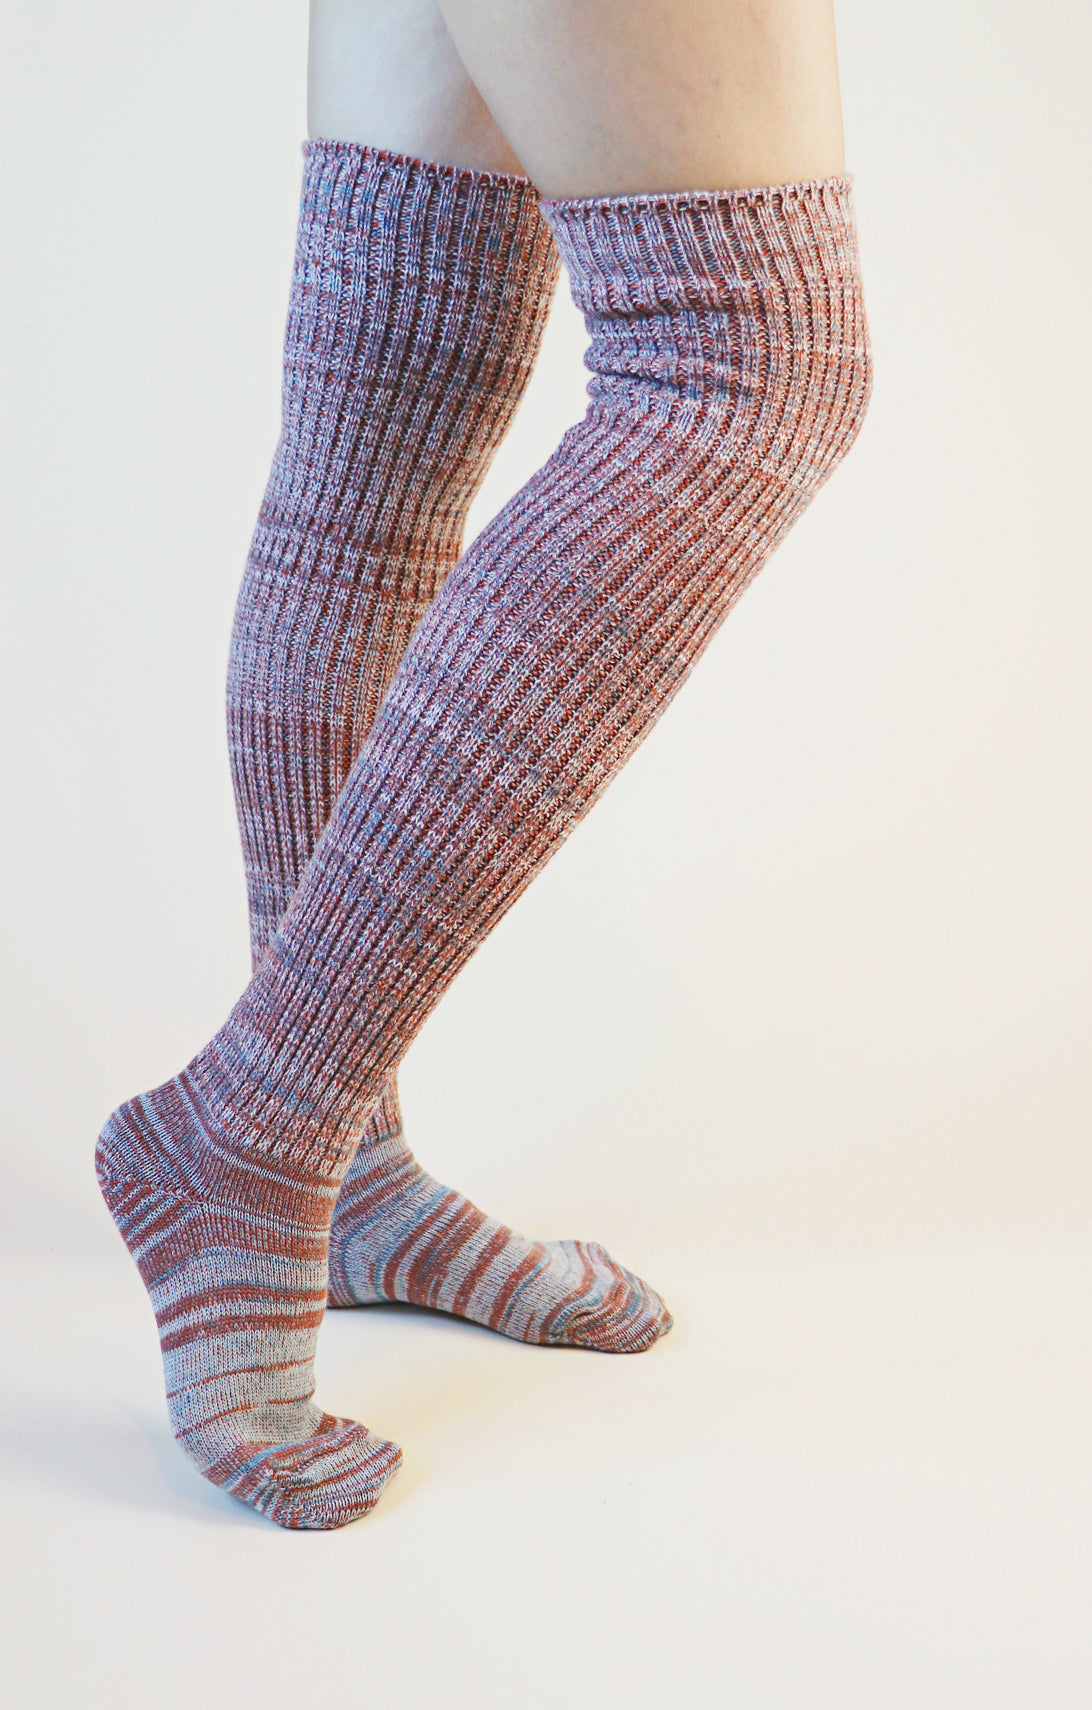 STAY HOME SOCKS l SCRUNCHY OVER THE KNEE SOCKS l WOOL BLEND